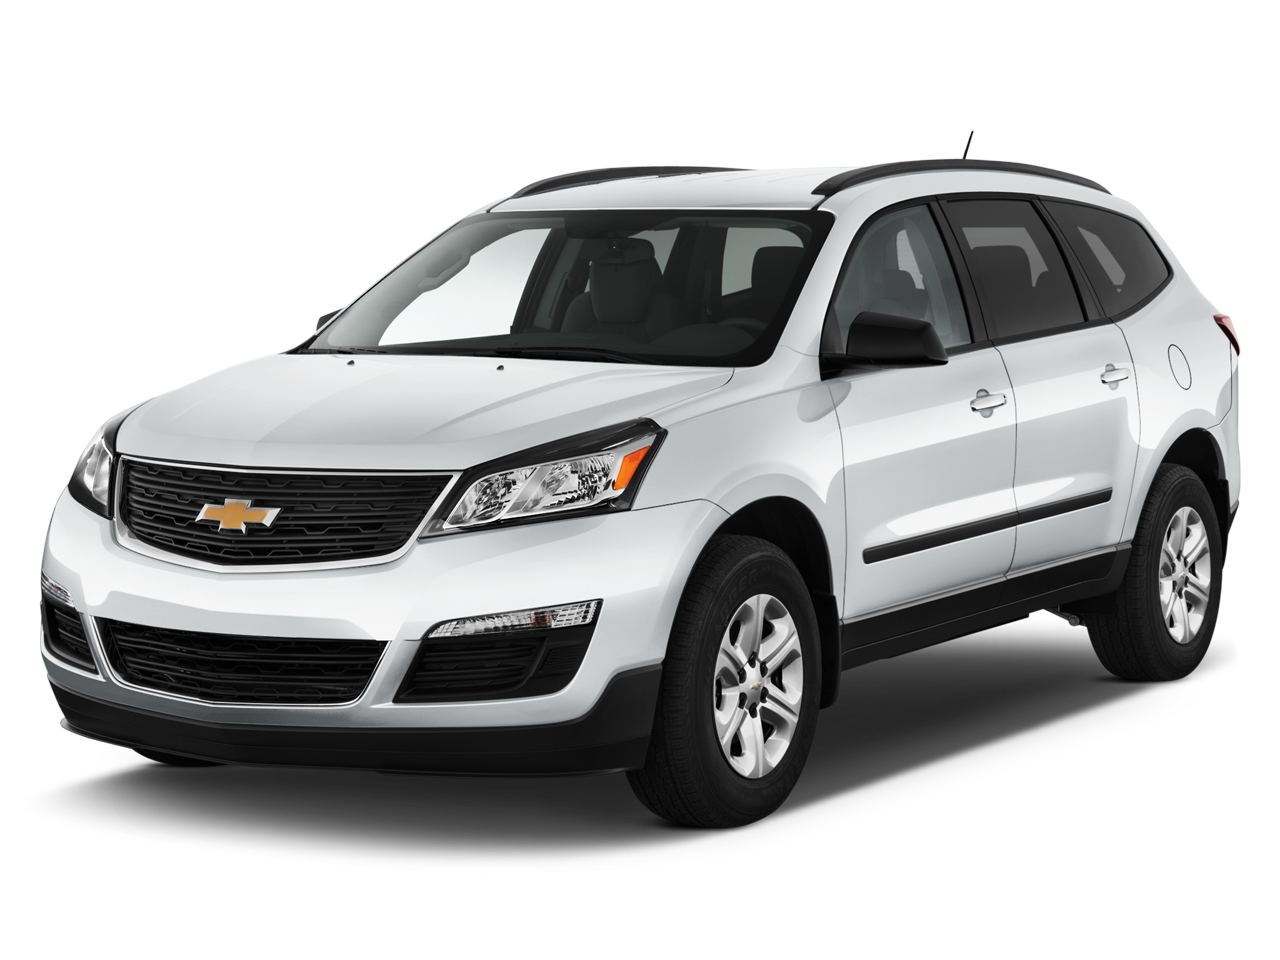 2017 chevy traverse for sale near norman ok david stanley chevy. Black Bedroom Furniture Sets. Home Design Ideas